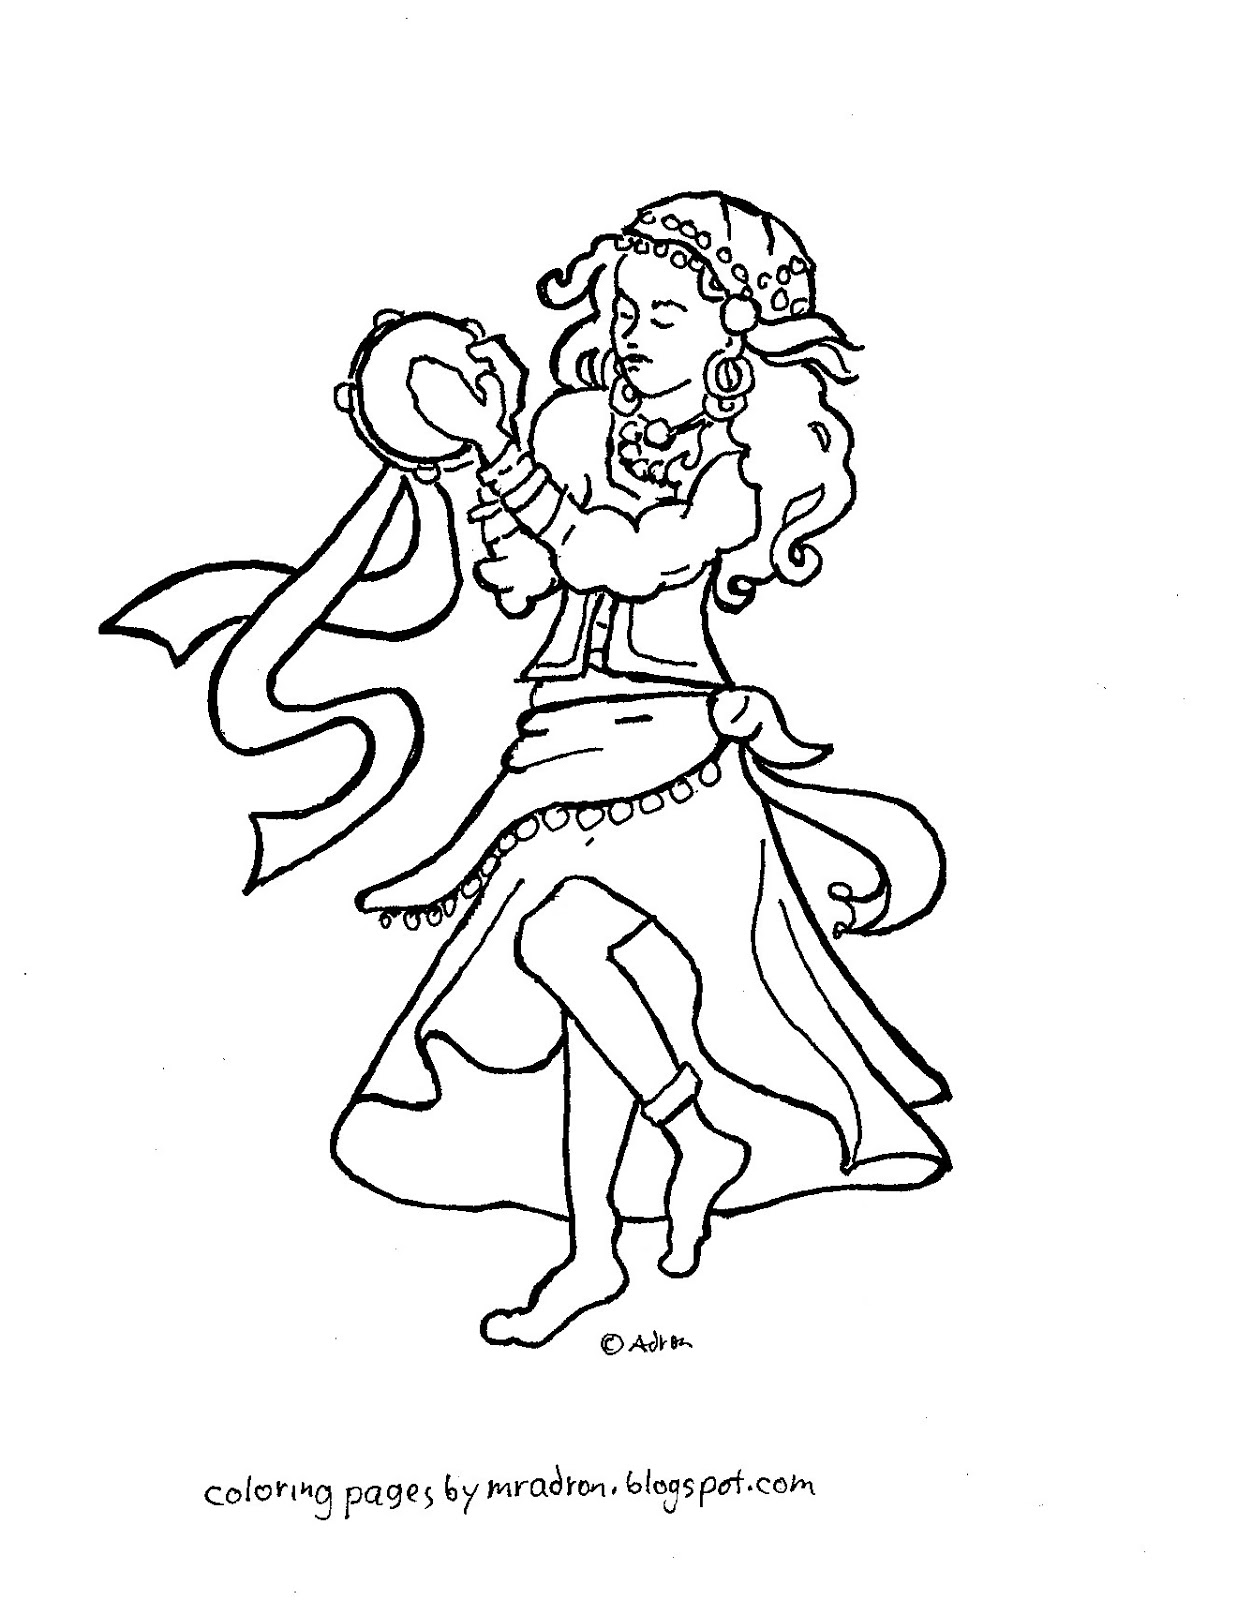 gypsy coloring pages | Coloring Pages for Kids by Mr. Adron: Esmeralda the Gypsy ...